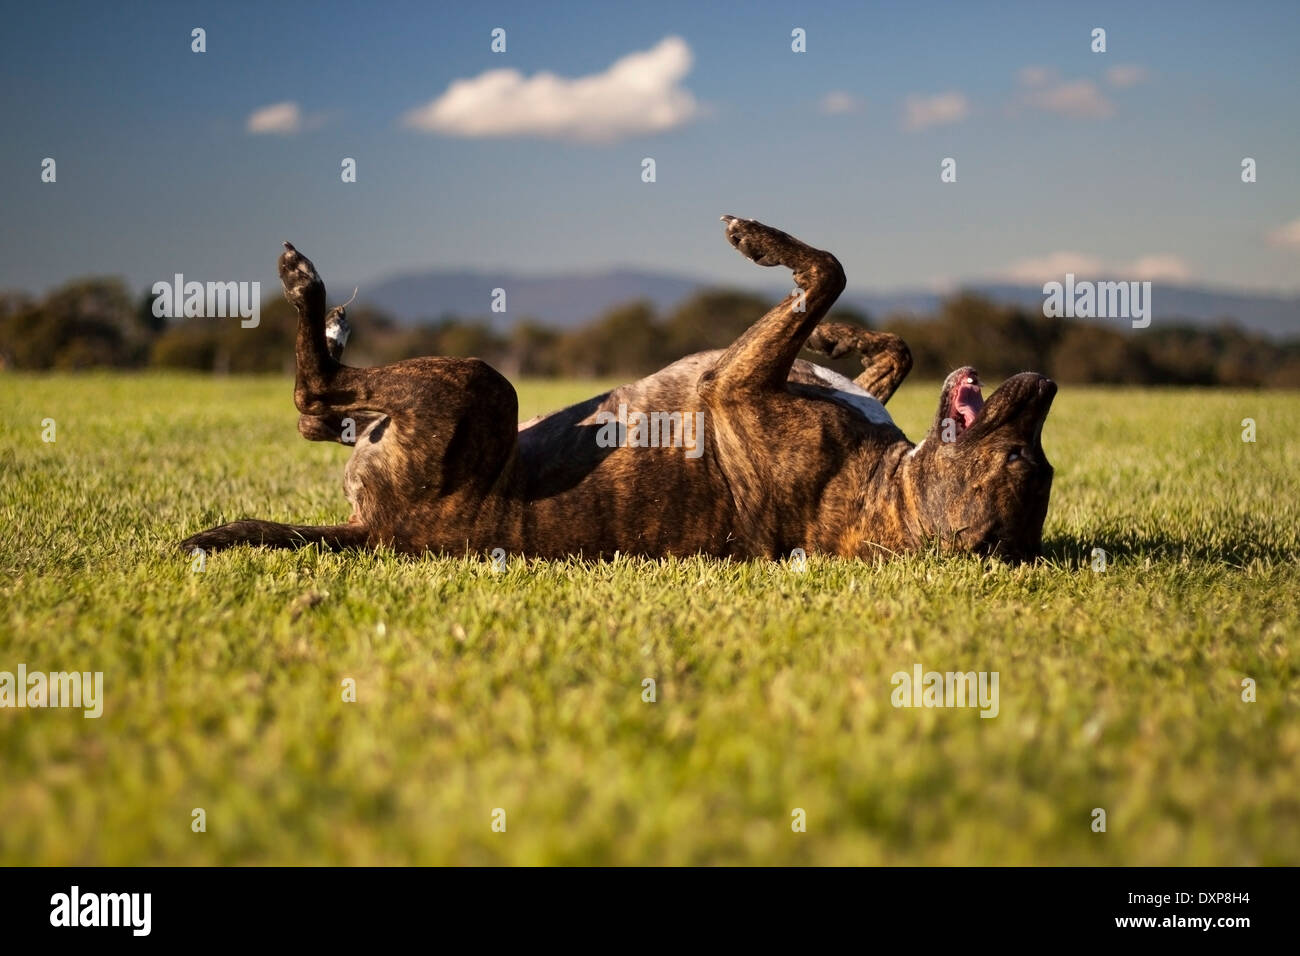 Dog rolling around on the grass. - Stock Image